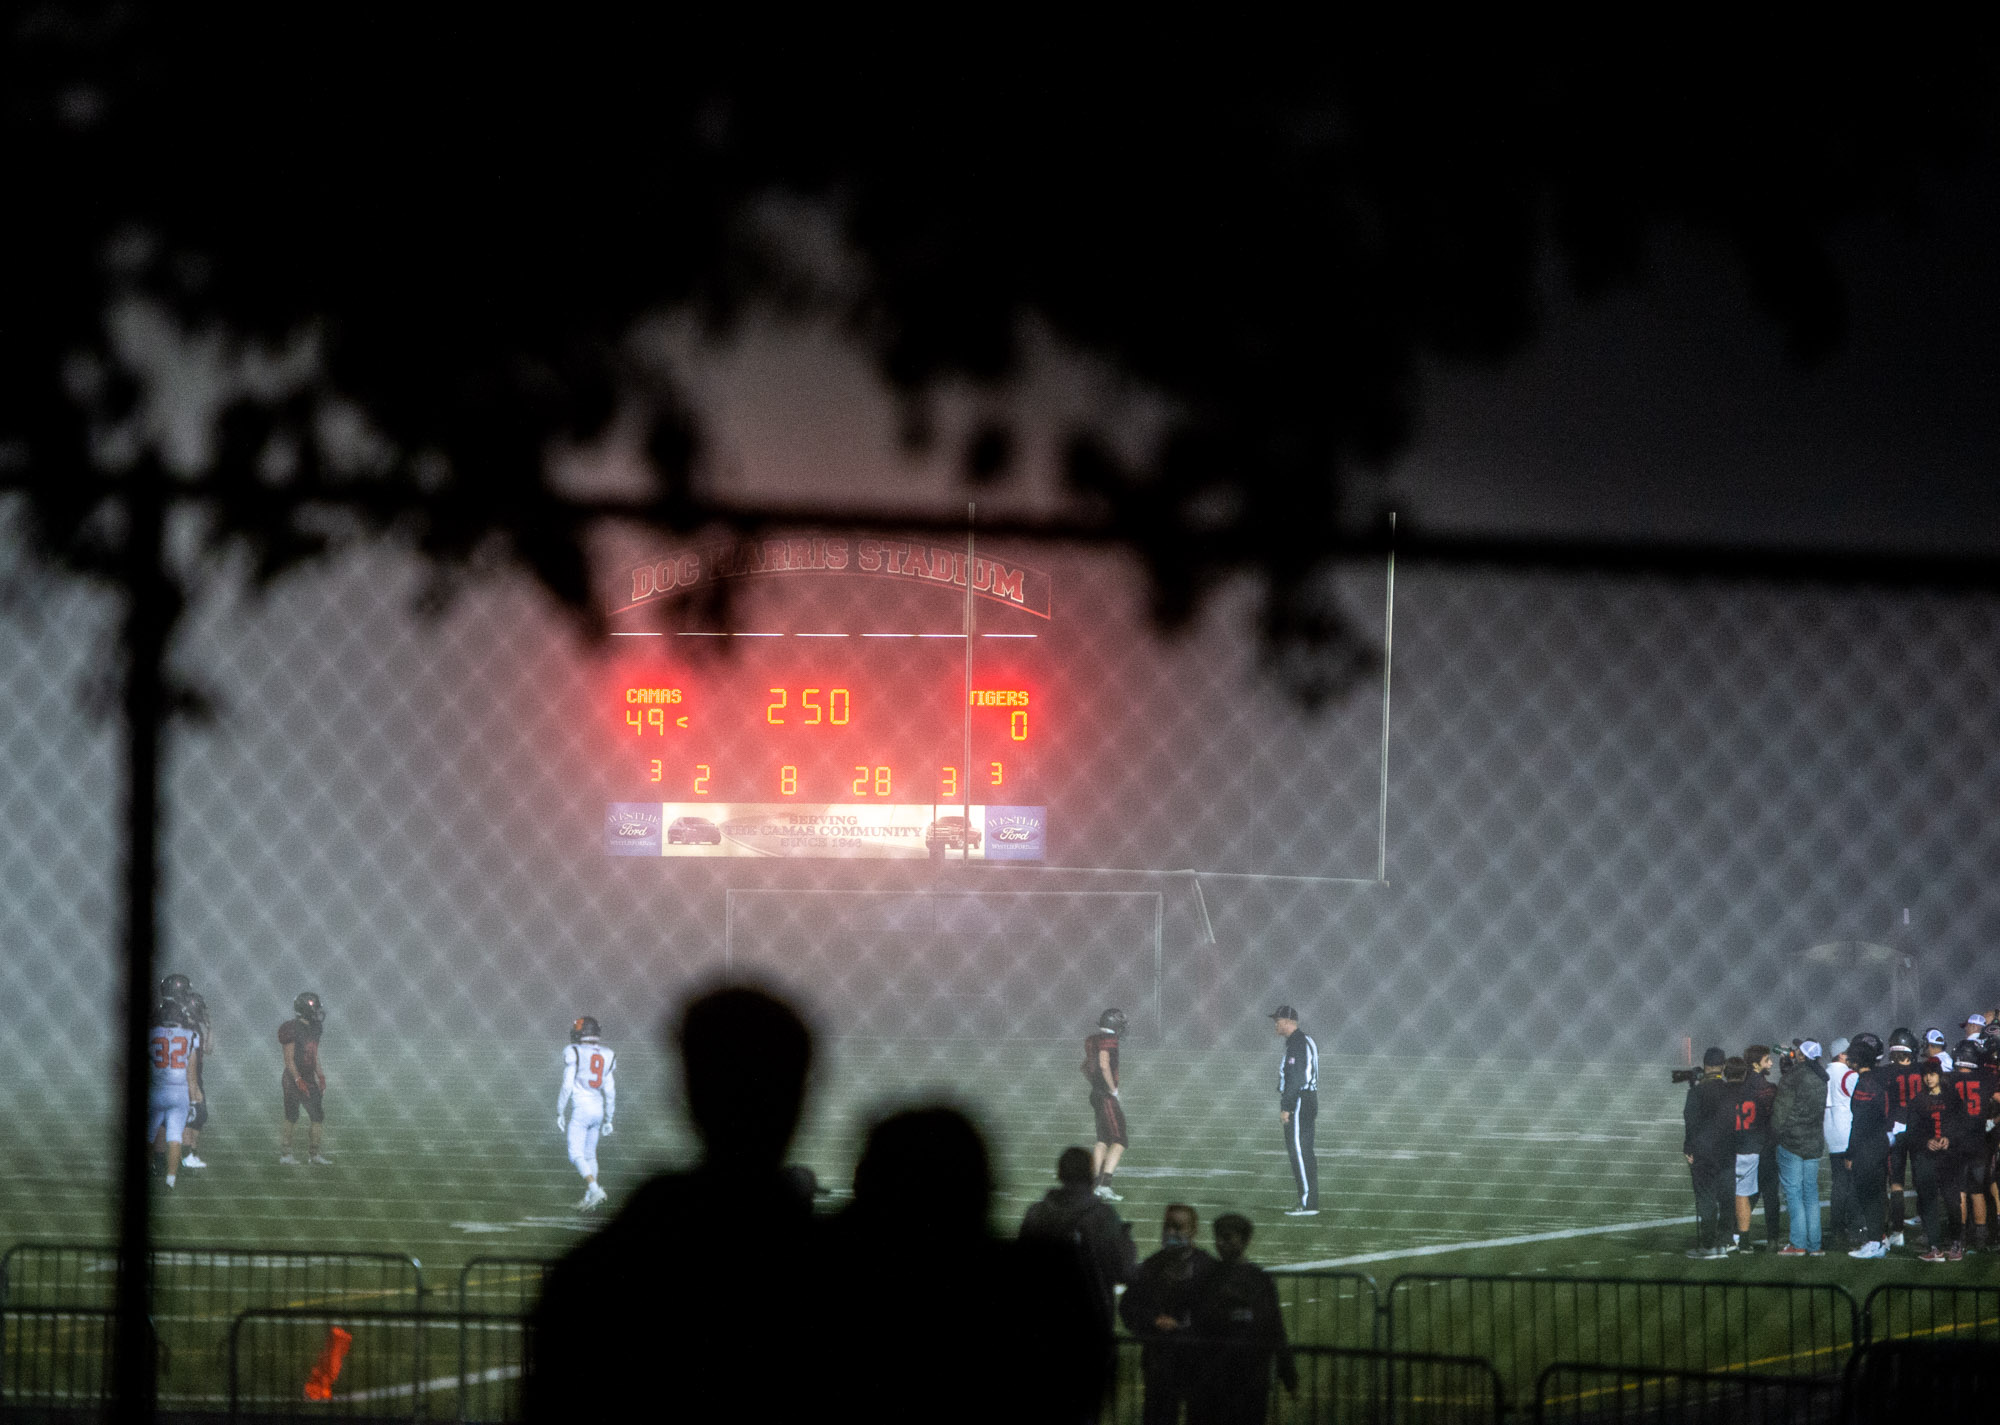 A couple snuggles up outside the stadium fencing to watch the third quarter in a 4A Greater St. Helens League football game on Thursday, Sept. 30, 2021, at Doc Harris Stadium in Camas. Camas won 56-6 over Battle Ground.